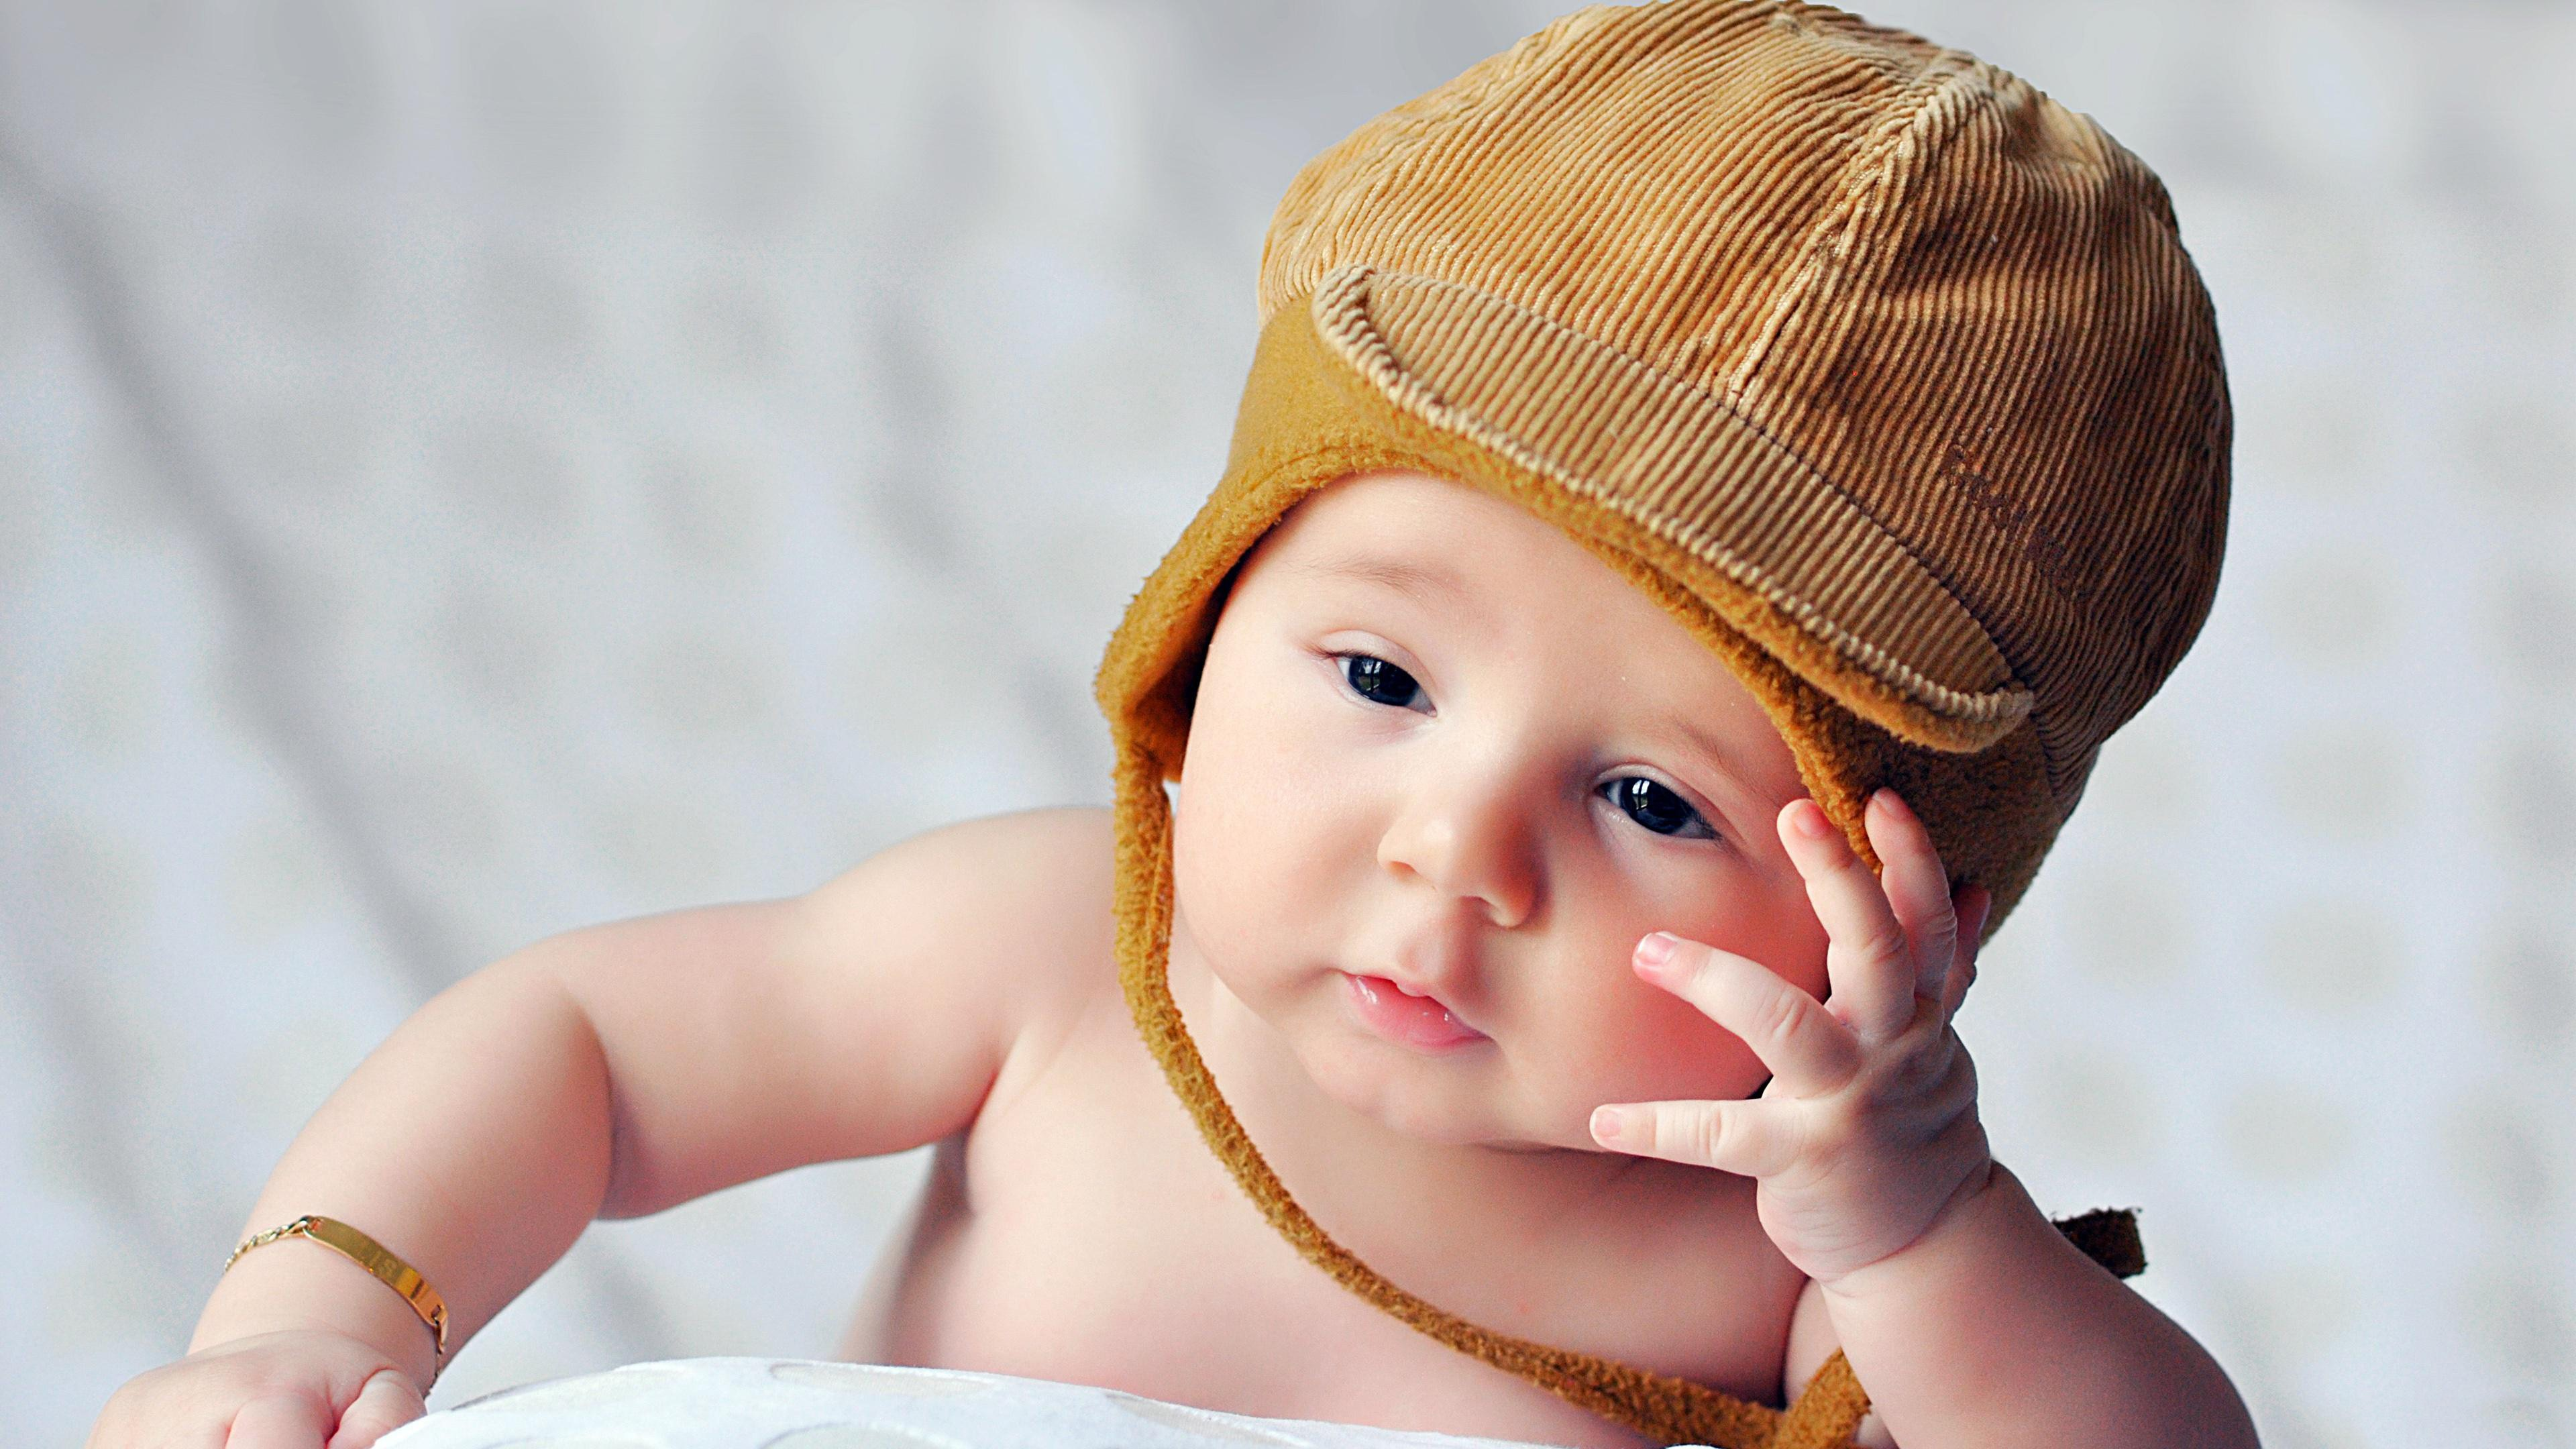 Baby 4k Wallpapers Top Free Baby 4k Backgrounds